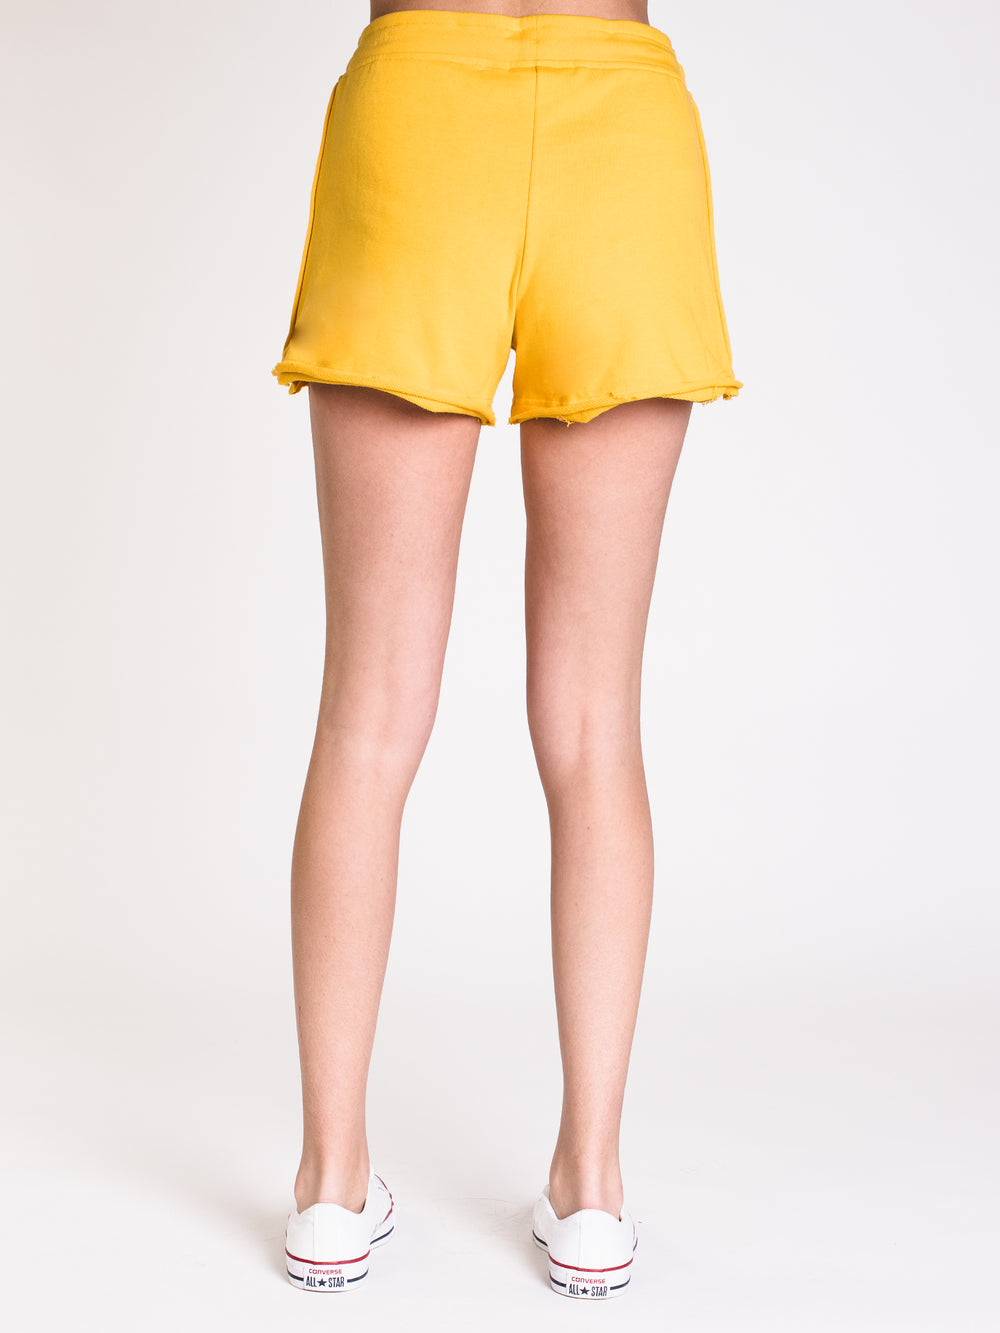 WOMENS RAW EDGE SHORT - YELLOW - CLEARANCE